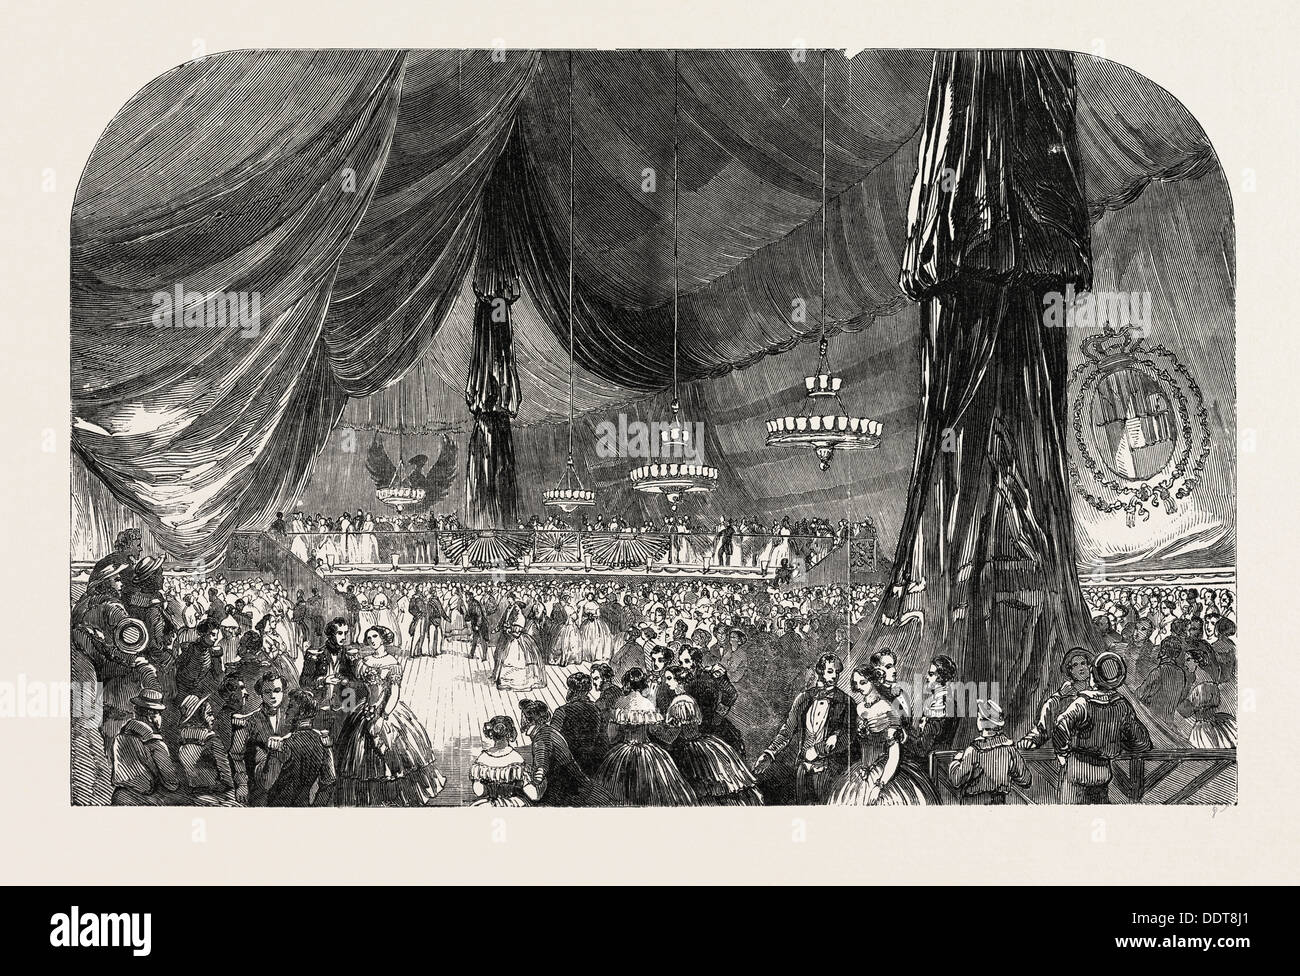 BALL ON BOARD HER MAJESTY'S SHIP WELLESLEY, PORT OF SPAIN. PORT-OF-SPAIN, TRINIDAD AND TOBAGO, 1851 engraving - Stock Image